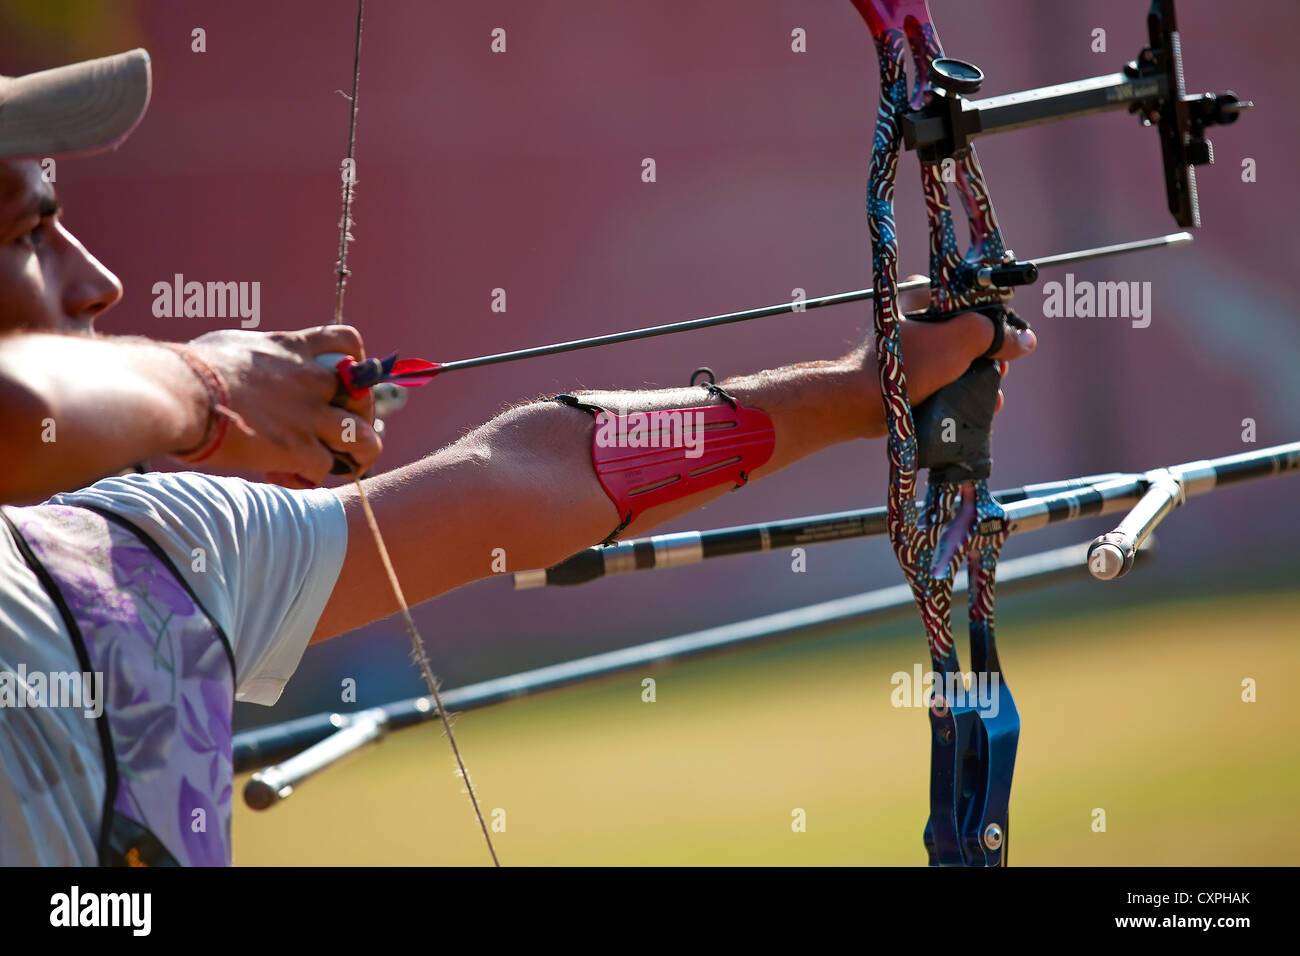 Archery Competition - Stock Image